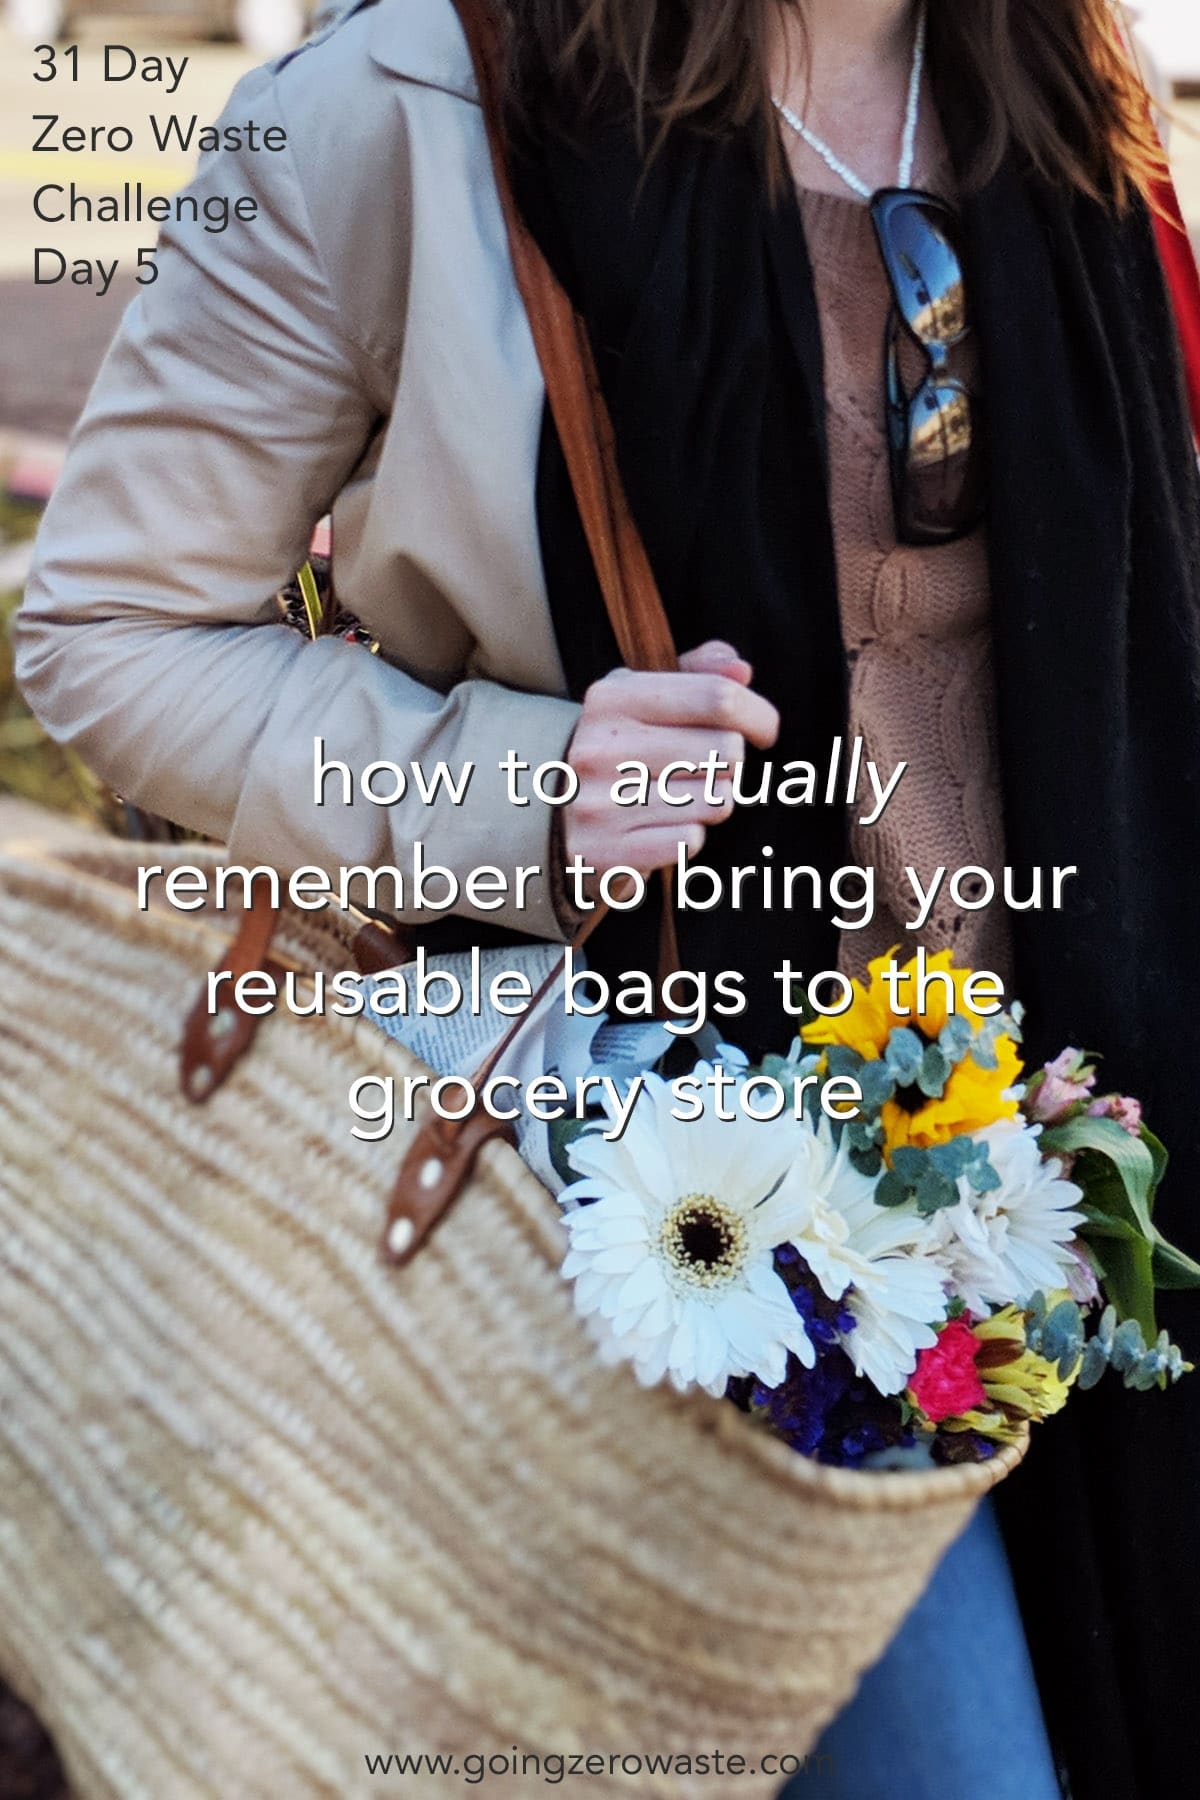 How to Actually Remember to Bring Your Reusable Bags - Day 5 of the Zero Waste Challenge